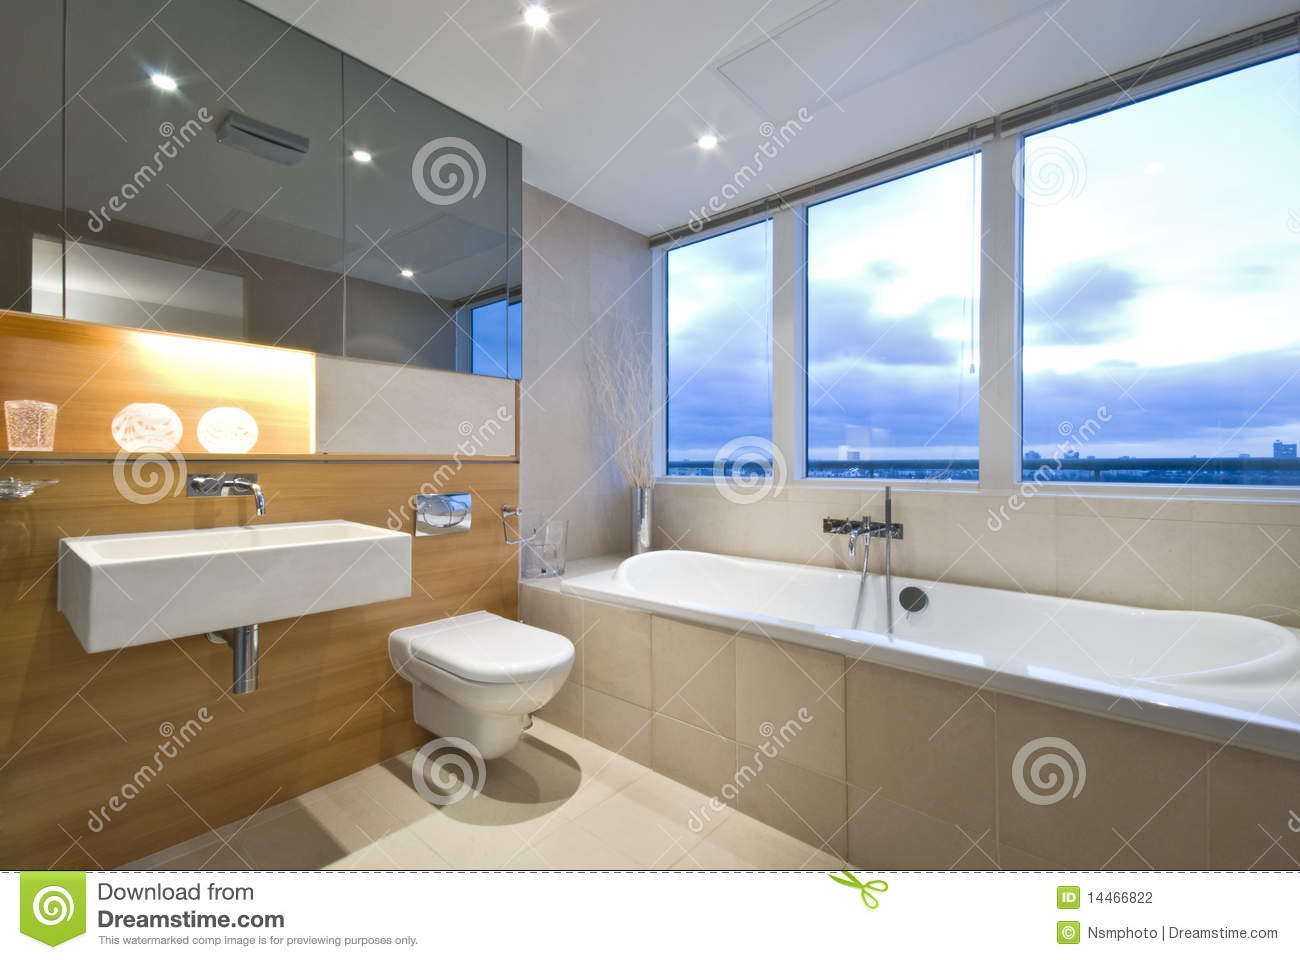 Cuartos De Baño Con Tina:Modern Bathroom with Large Windows